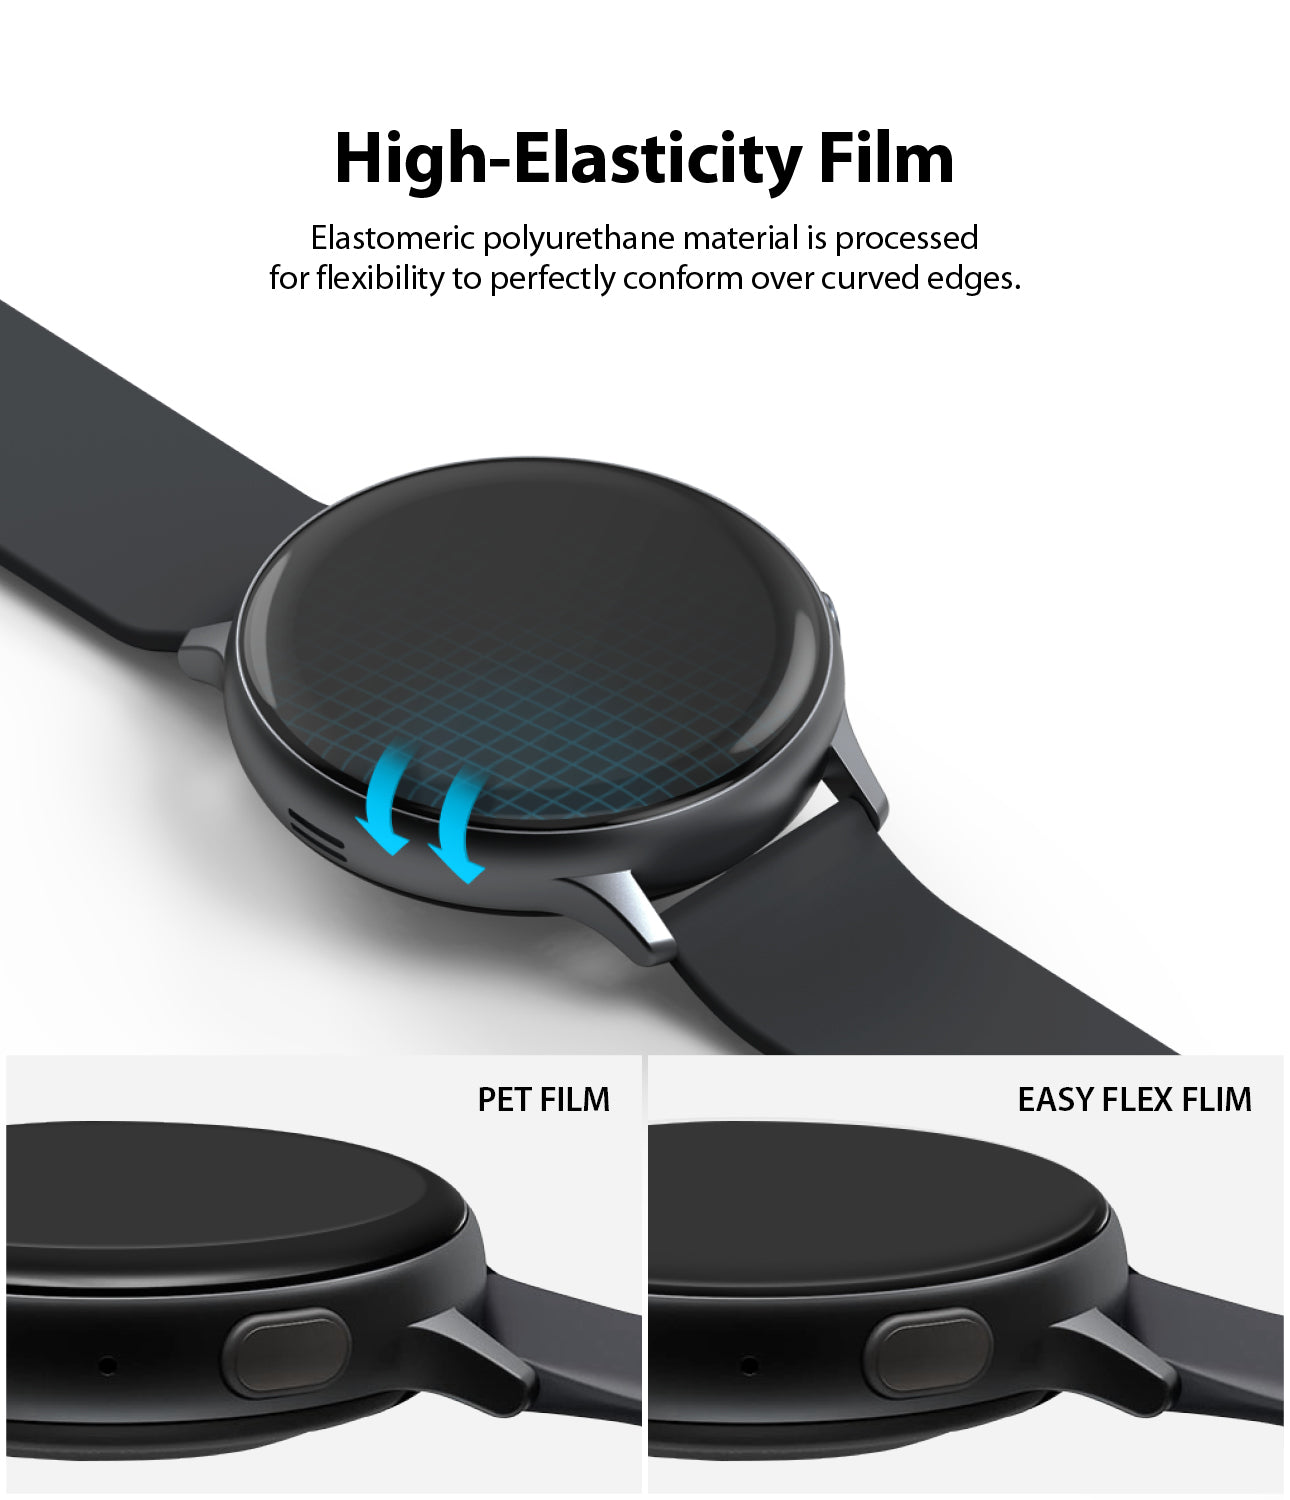 high elasticity film : elastomeric polyurethane material is processed for flexibility to perfectly conform over curved edges